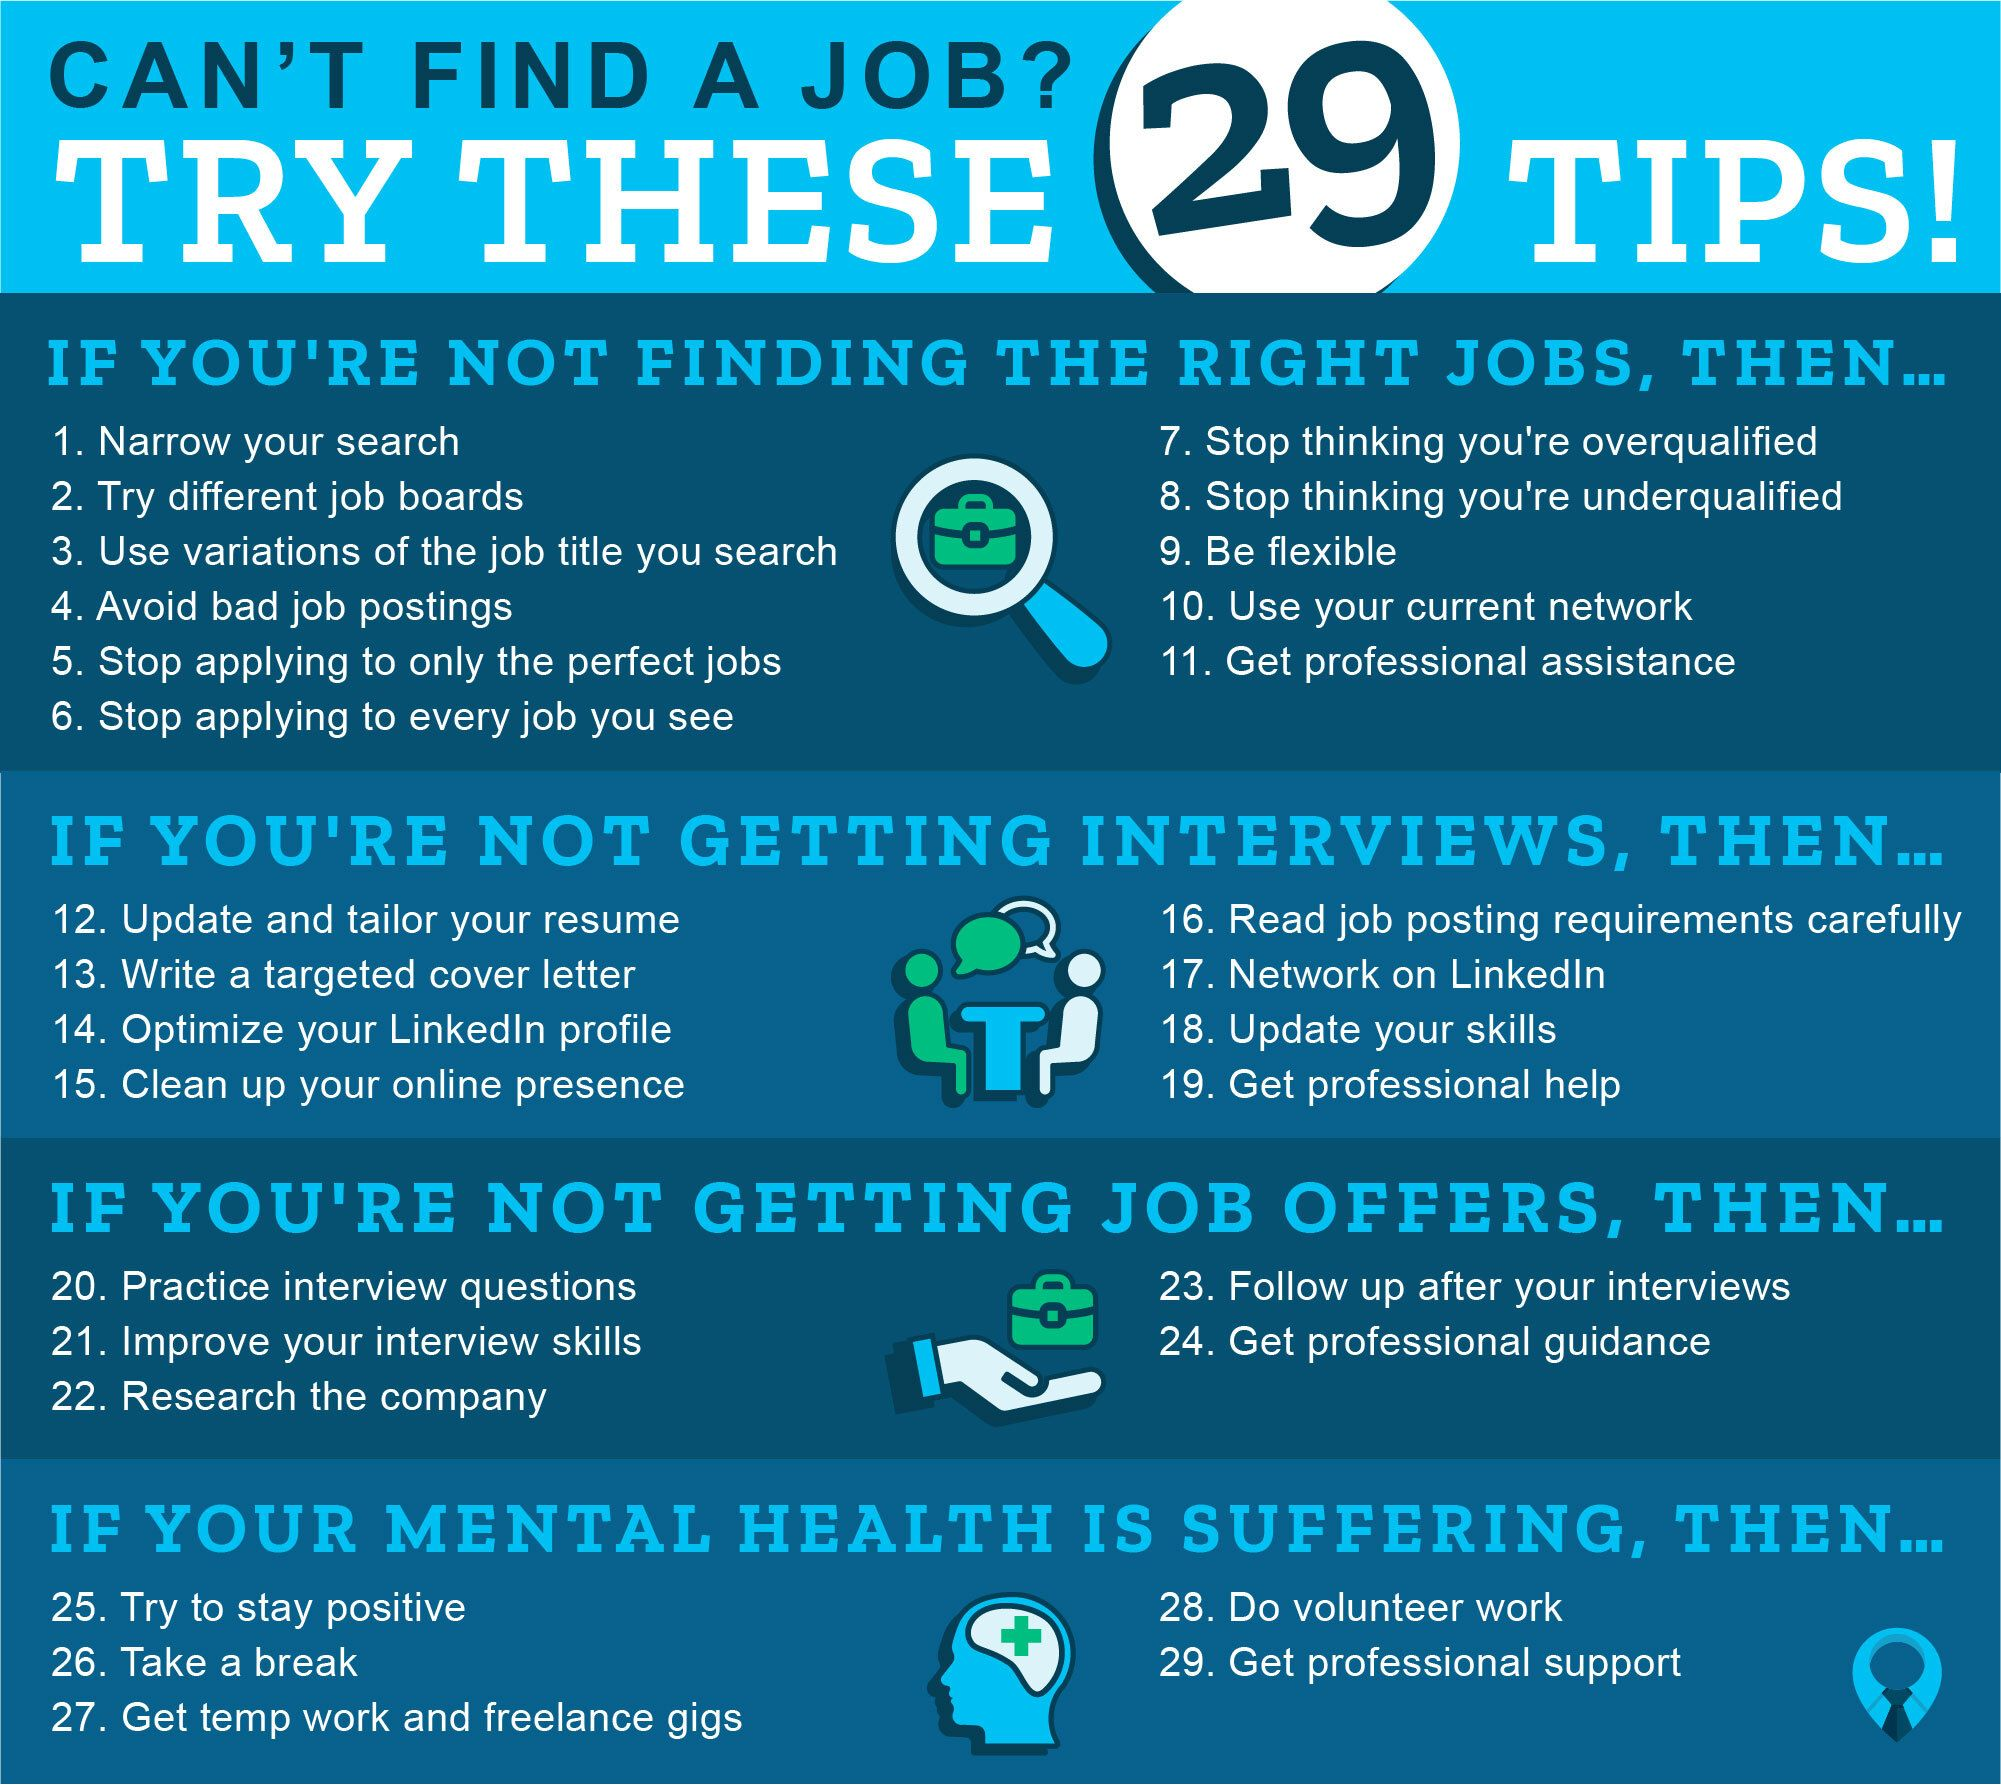 29 Things to Try If You Can't Find a Job